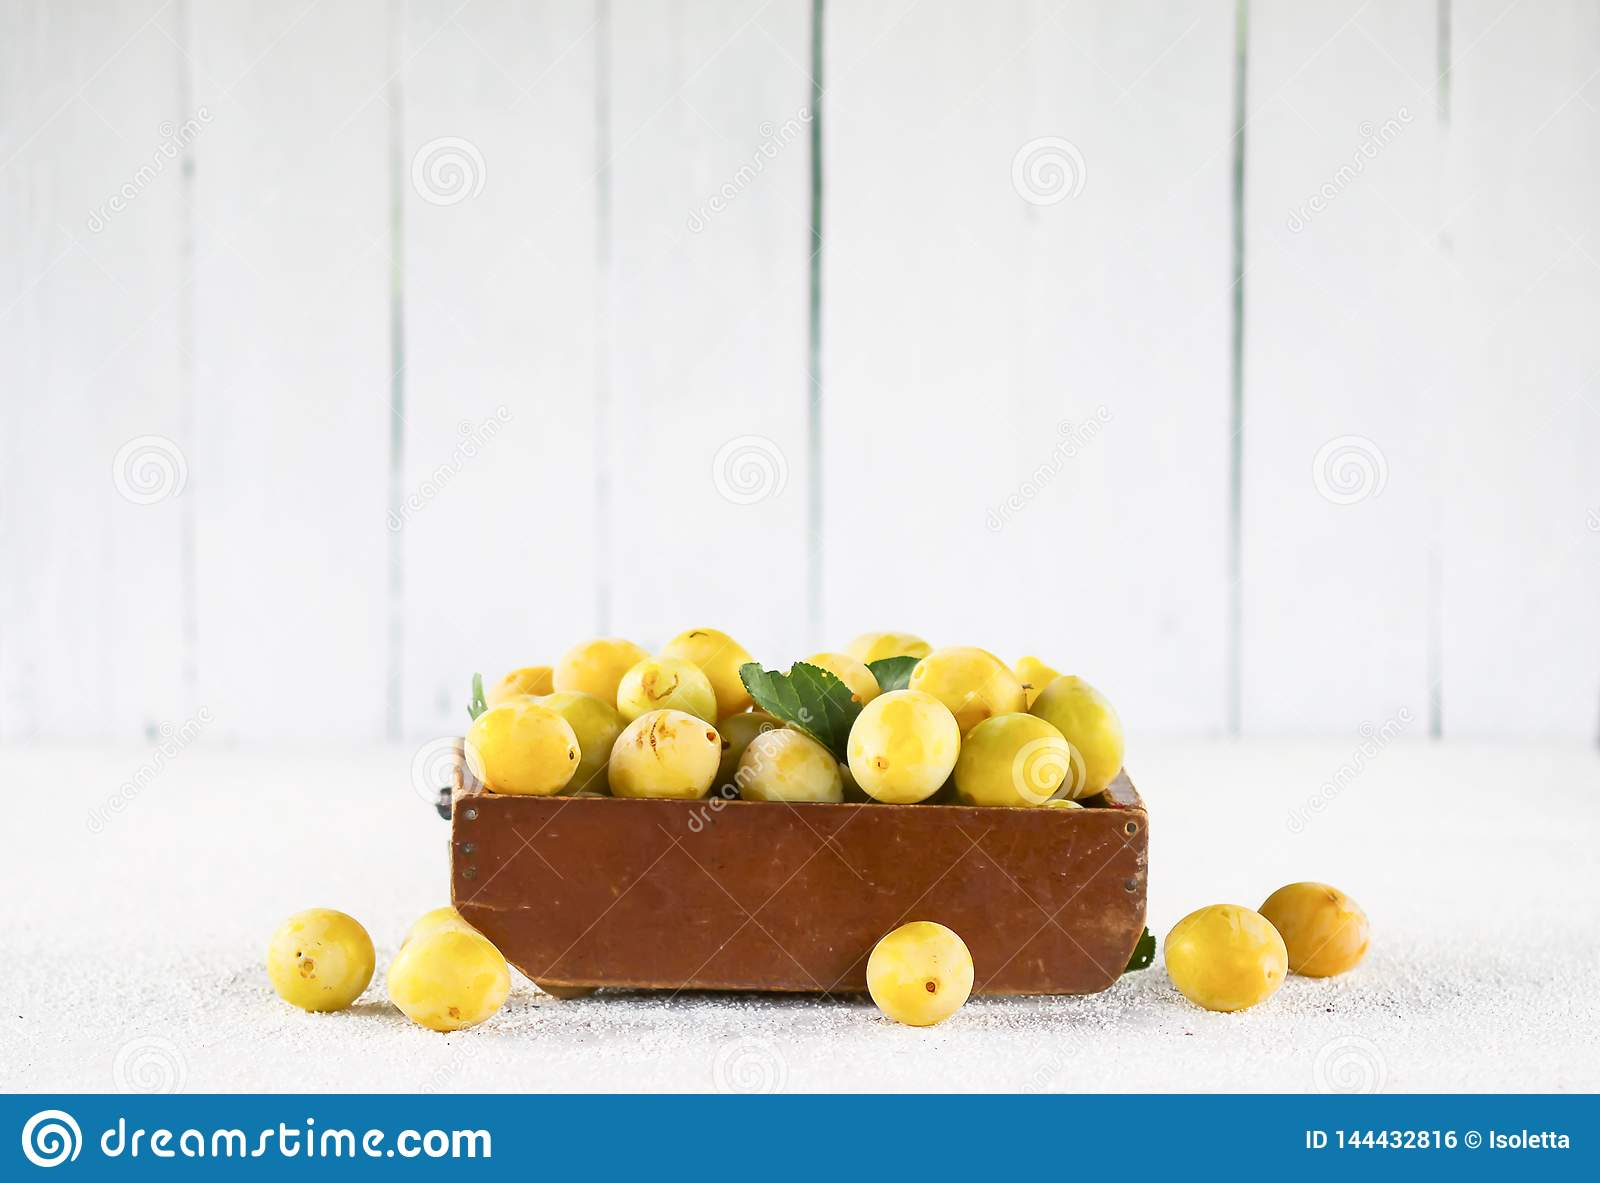 Fresh yellow plums. Ripe fruits in a wooden box on white boards background